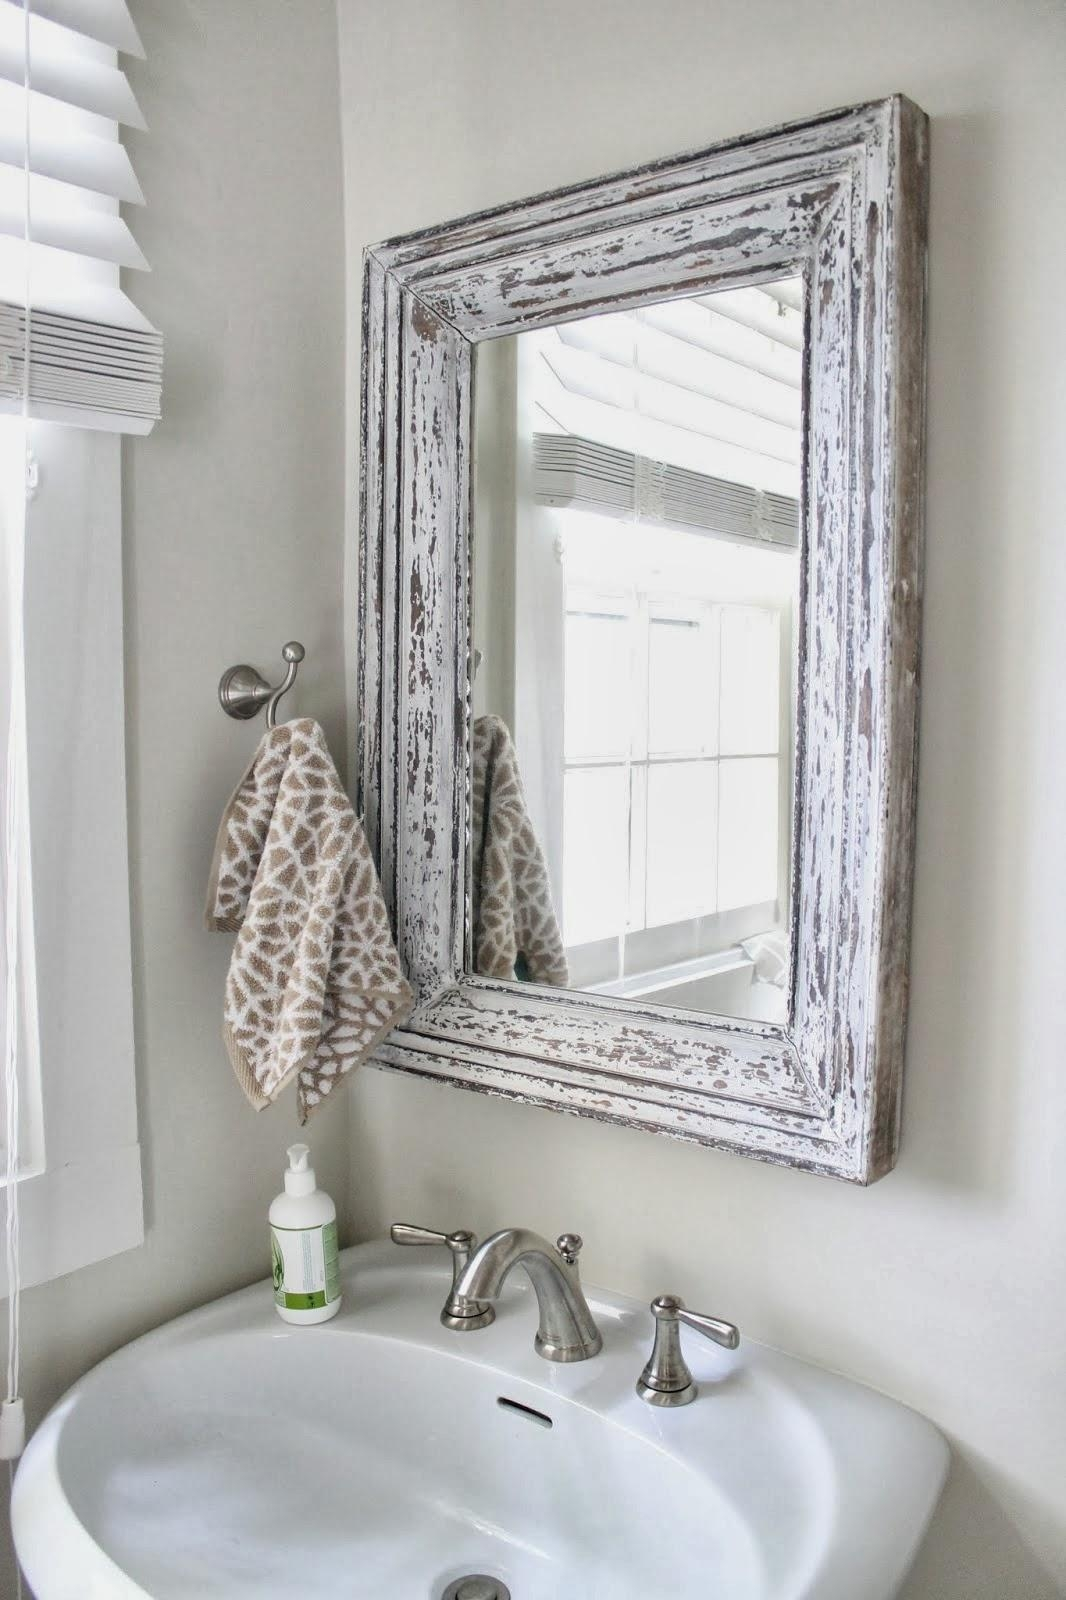 Shabby Chic Bathroom Mirror 63 Cool Ideas For Bathroomshabby Chic Inside Shabby Chic Mirror White (Image 10 of 20)